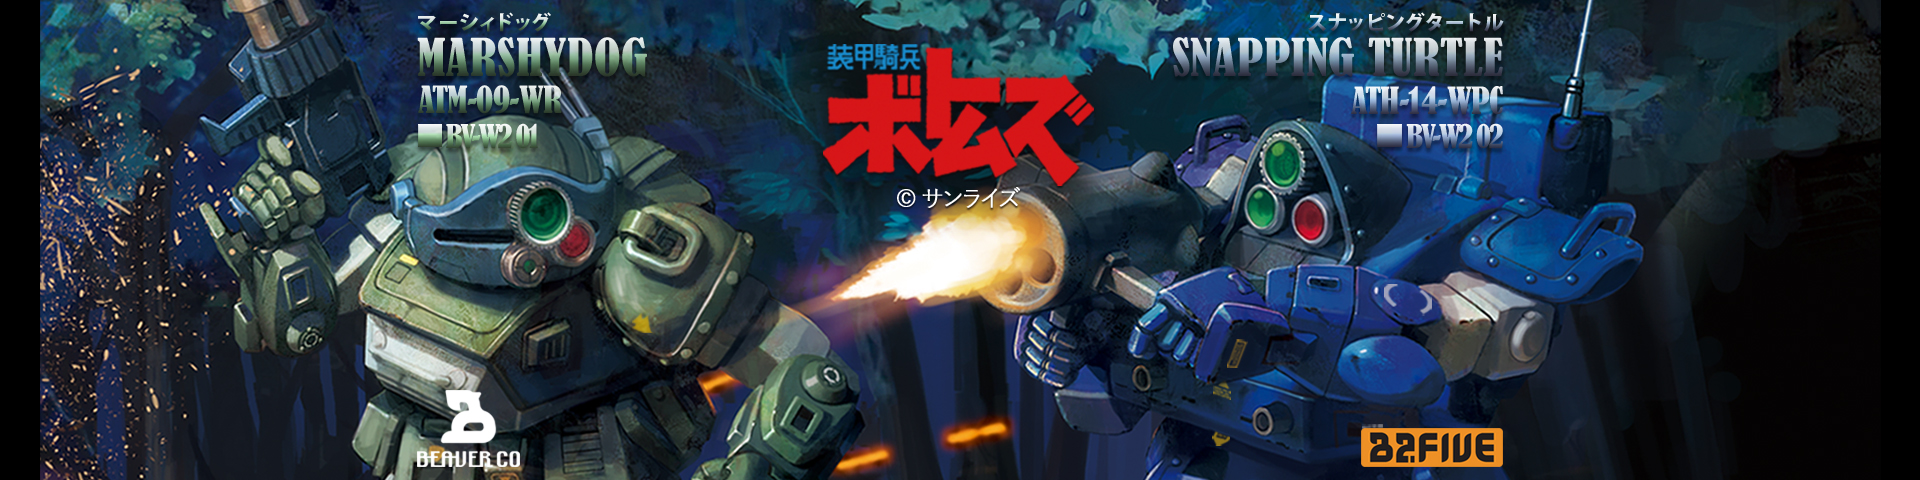 Votoms-Series-2-web-banner-1